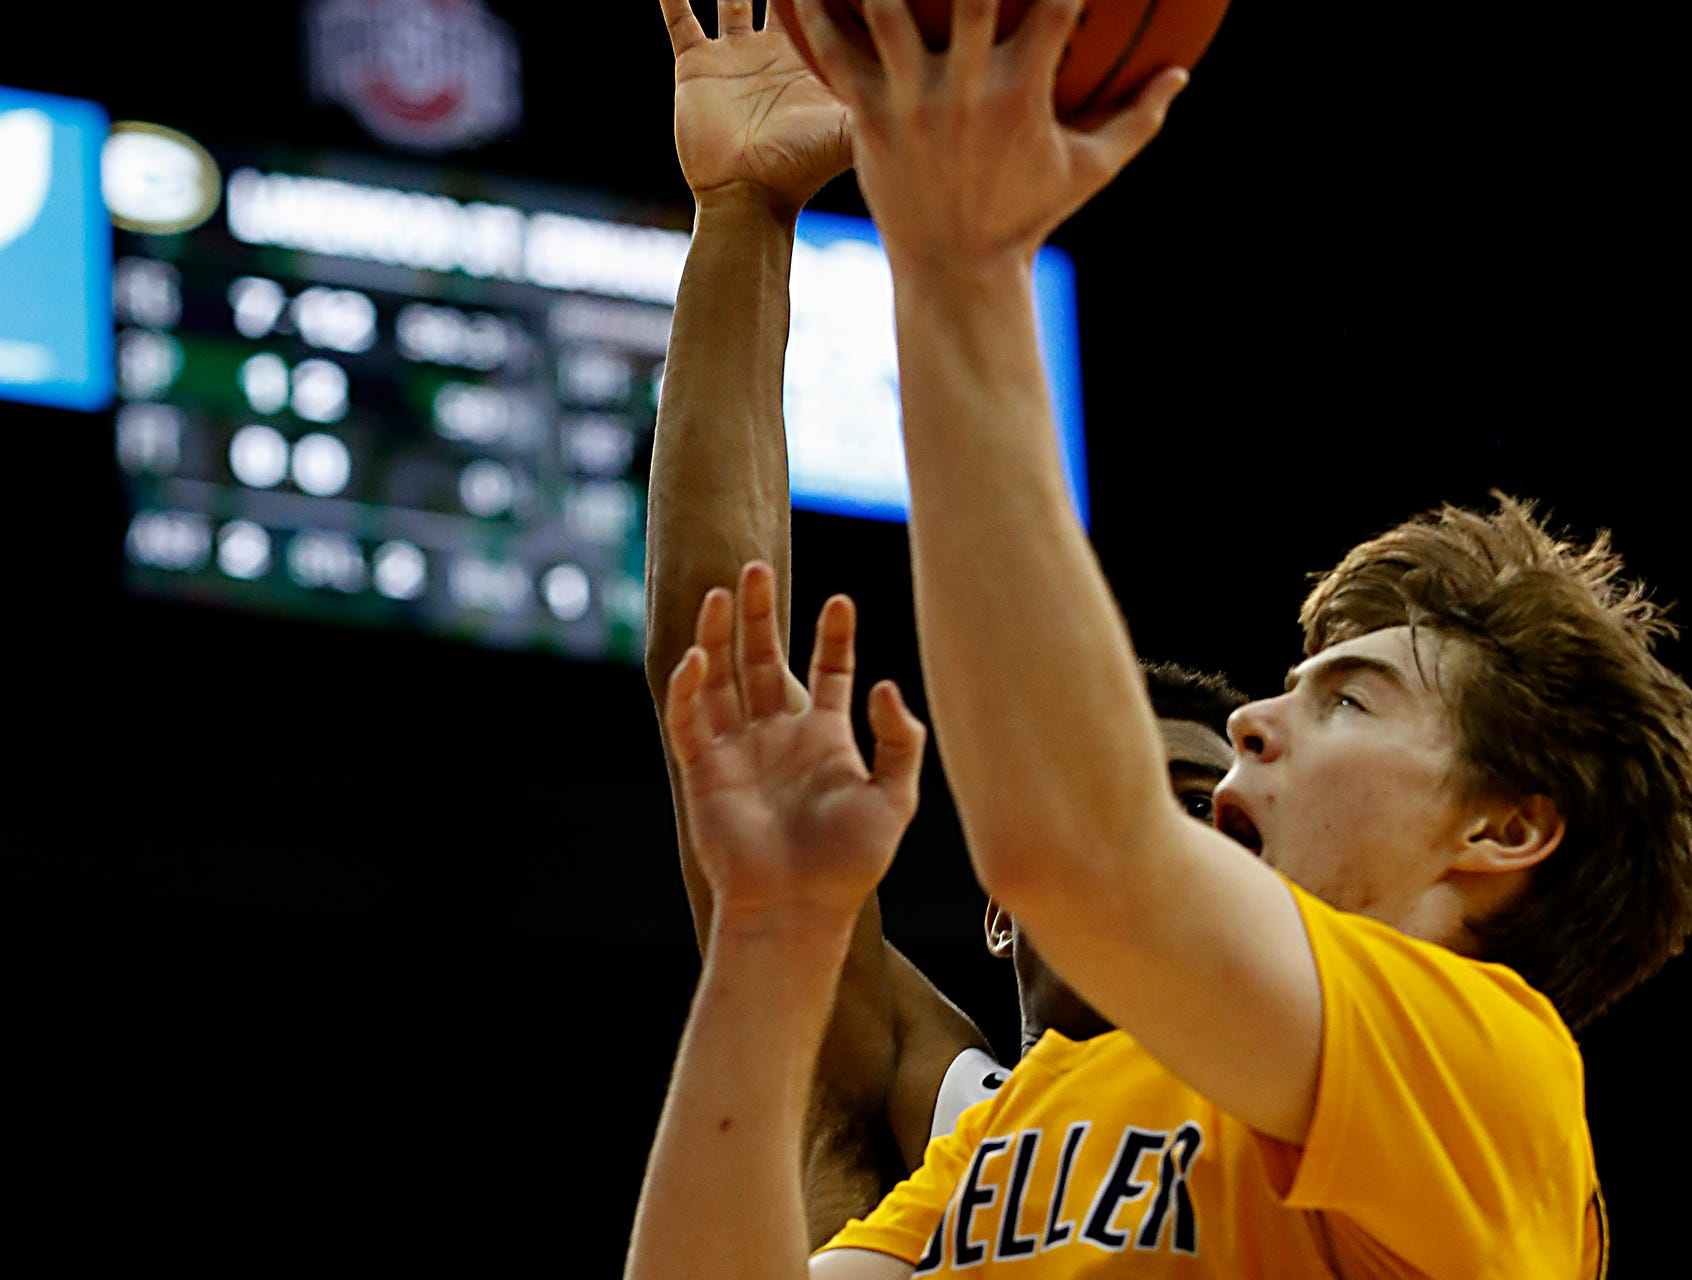 Moeller forward Alec Pfriem gets the basket despite the pressure from St. Edward guard Montorie Foster during their Division I semifinal at the Schottenstein Center in Columbus Friday, March 22, 2019.